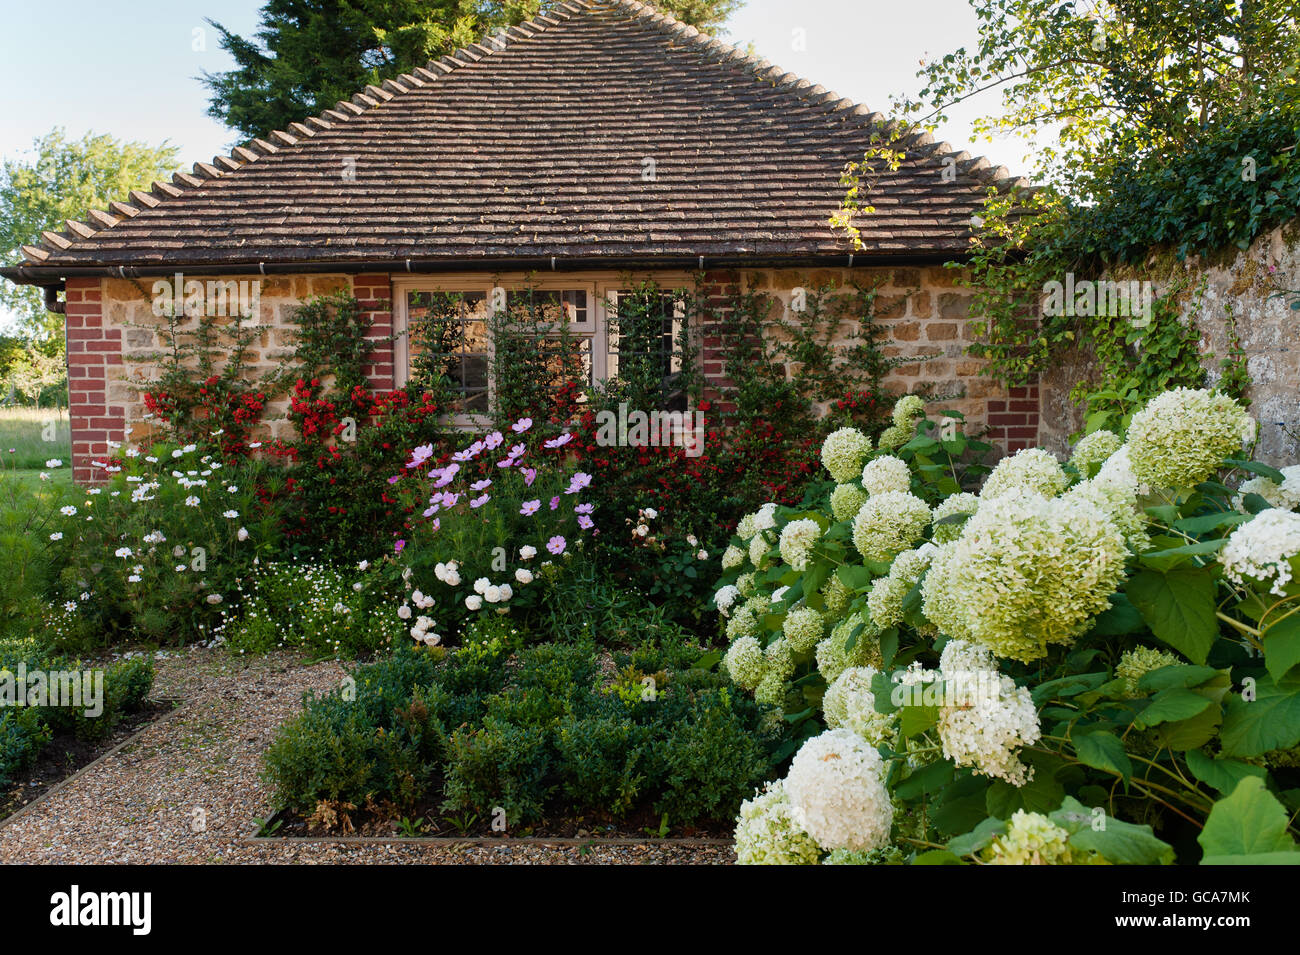 Exterior facade of English country cottage with box hedge and hydrangeas - Stock Image